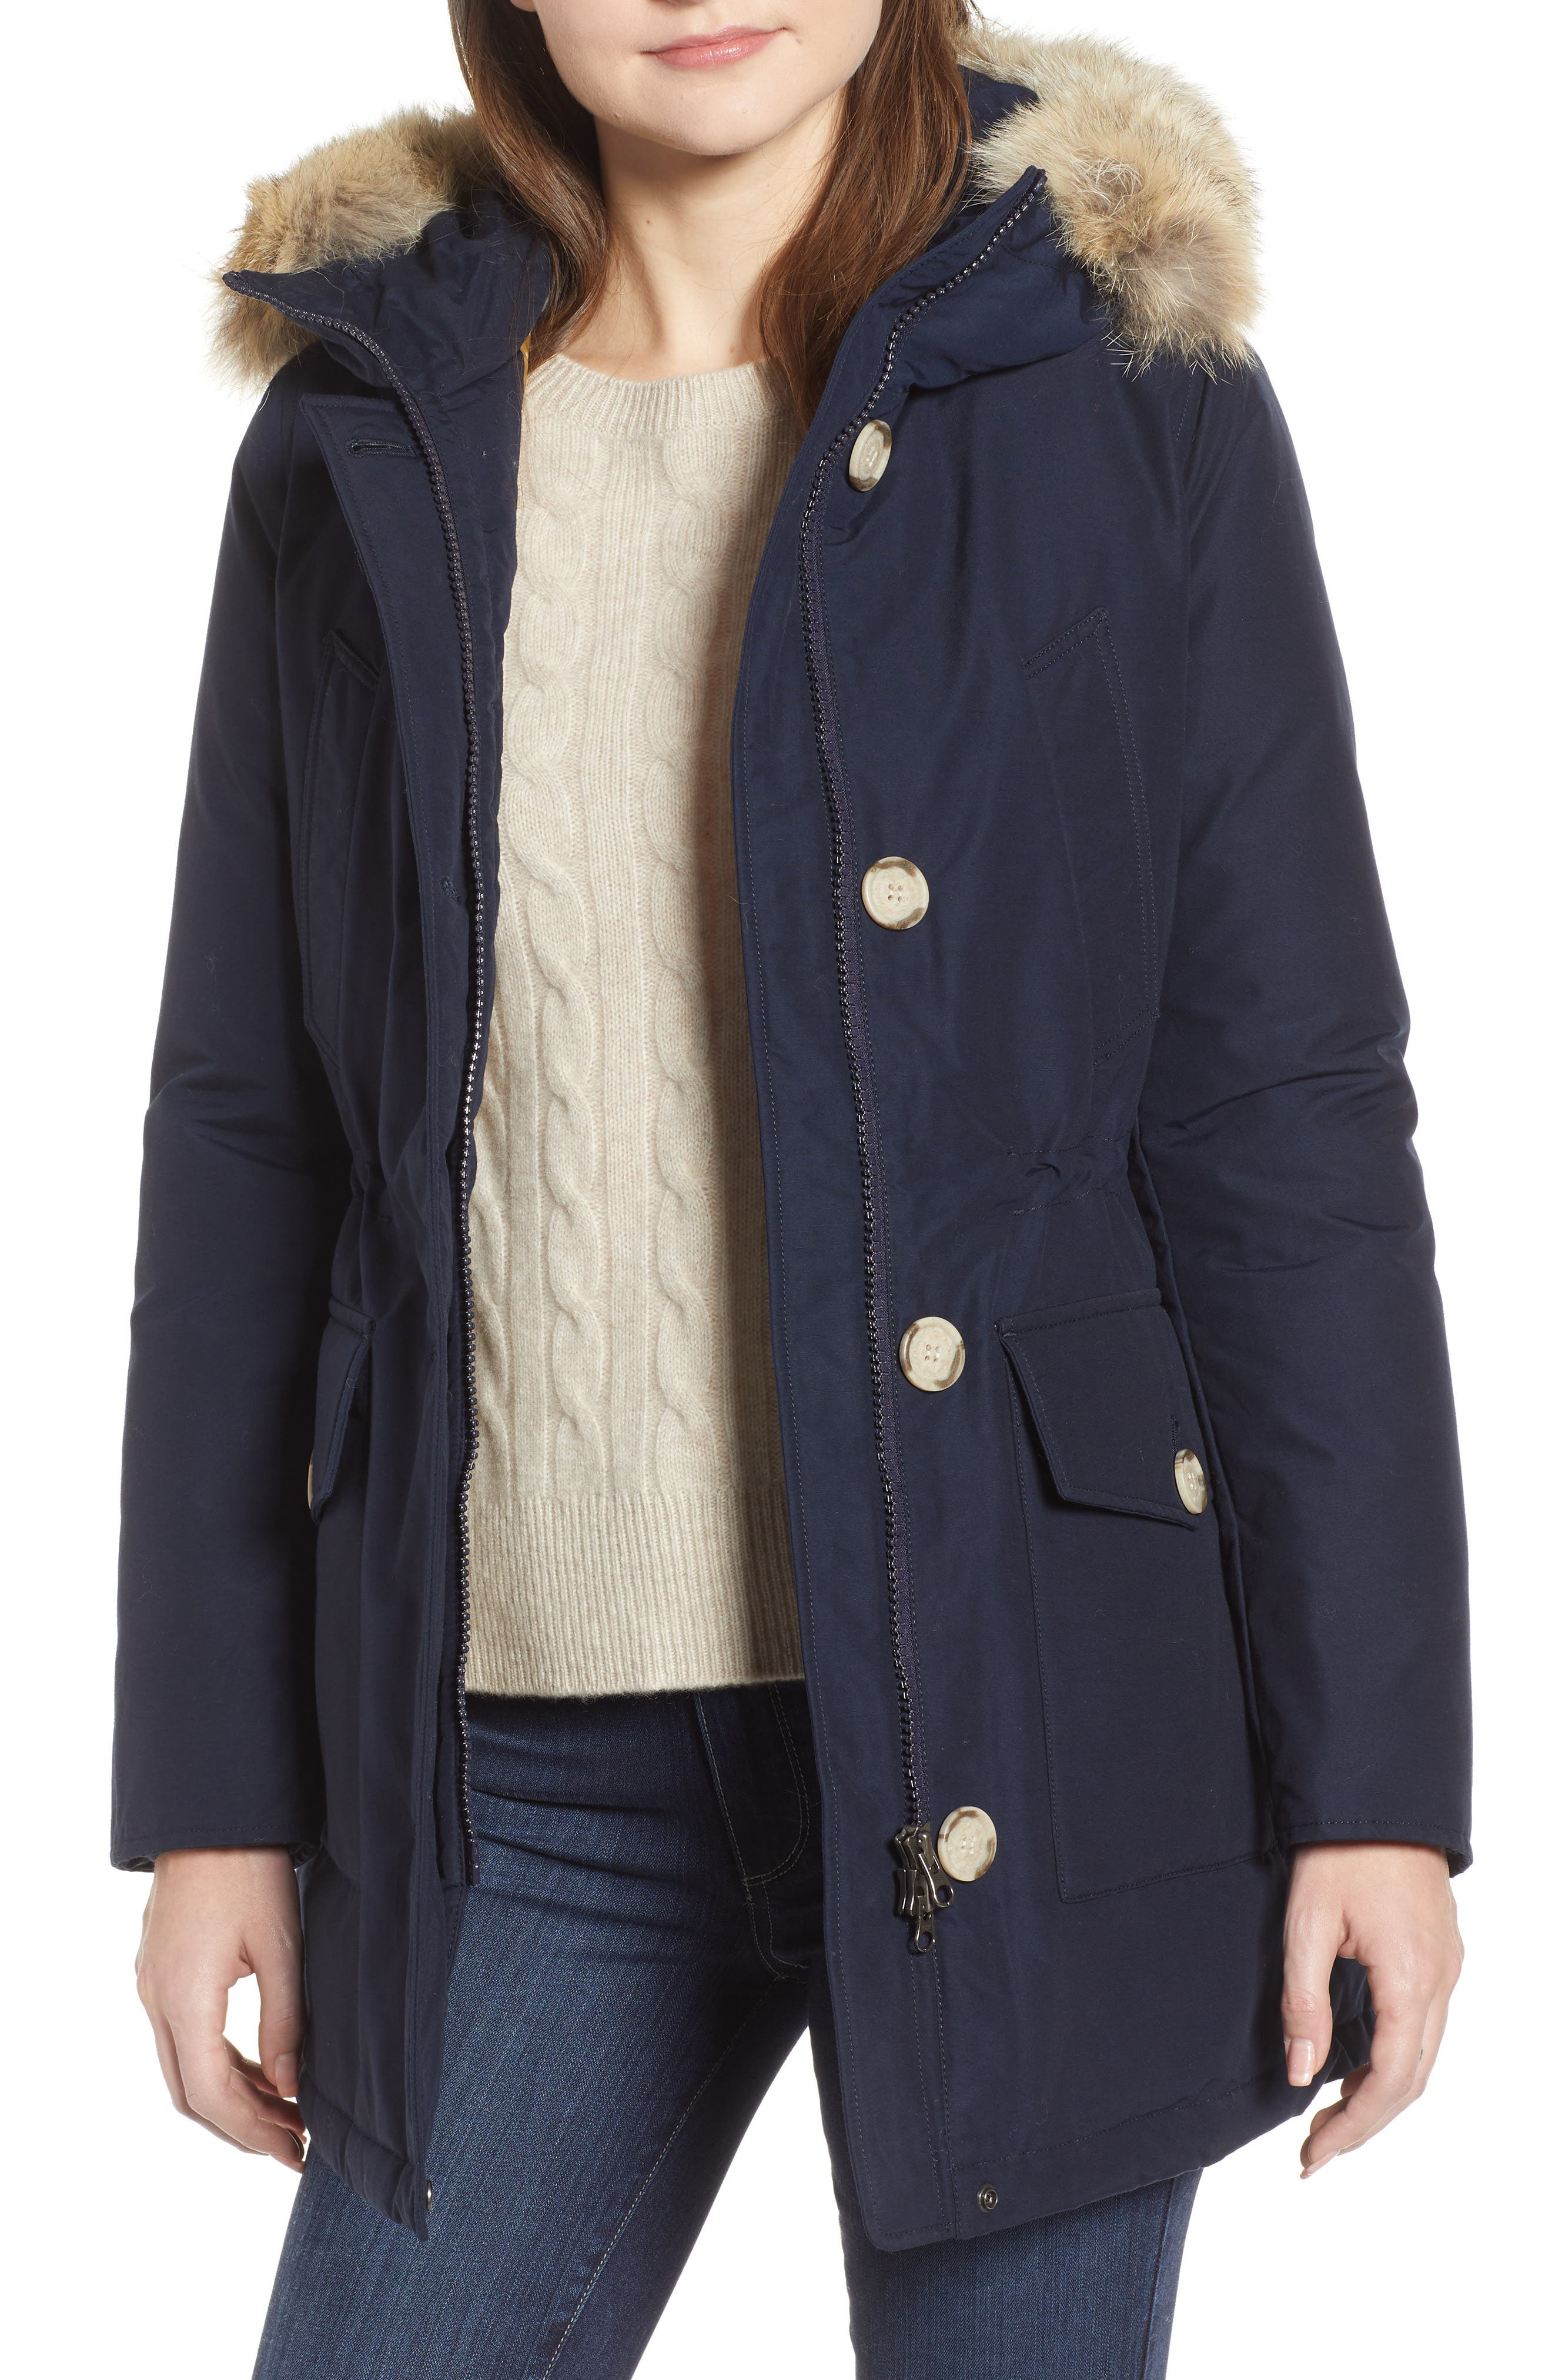 WOOLRICH 'Arctic' Water Resistant 550-Fill Power Down Parka with Genuine Coyote Fur Trim, Main, color, 400